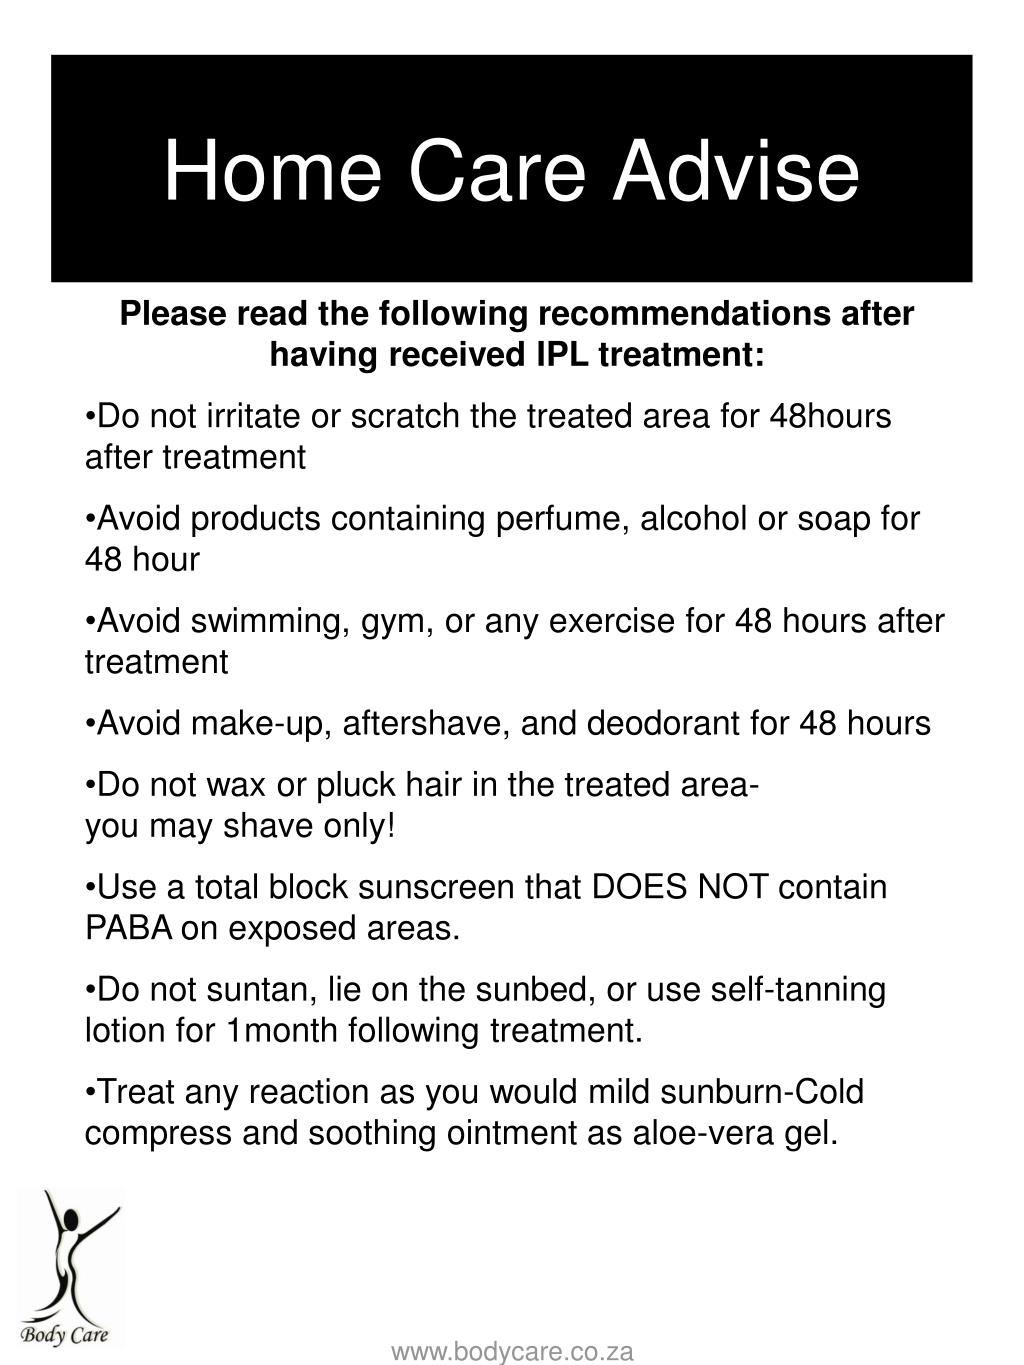 Home Care Advise